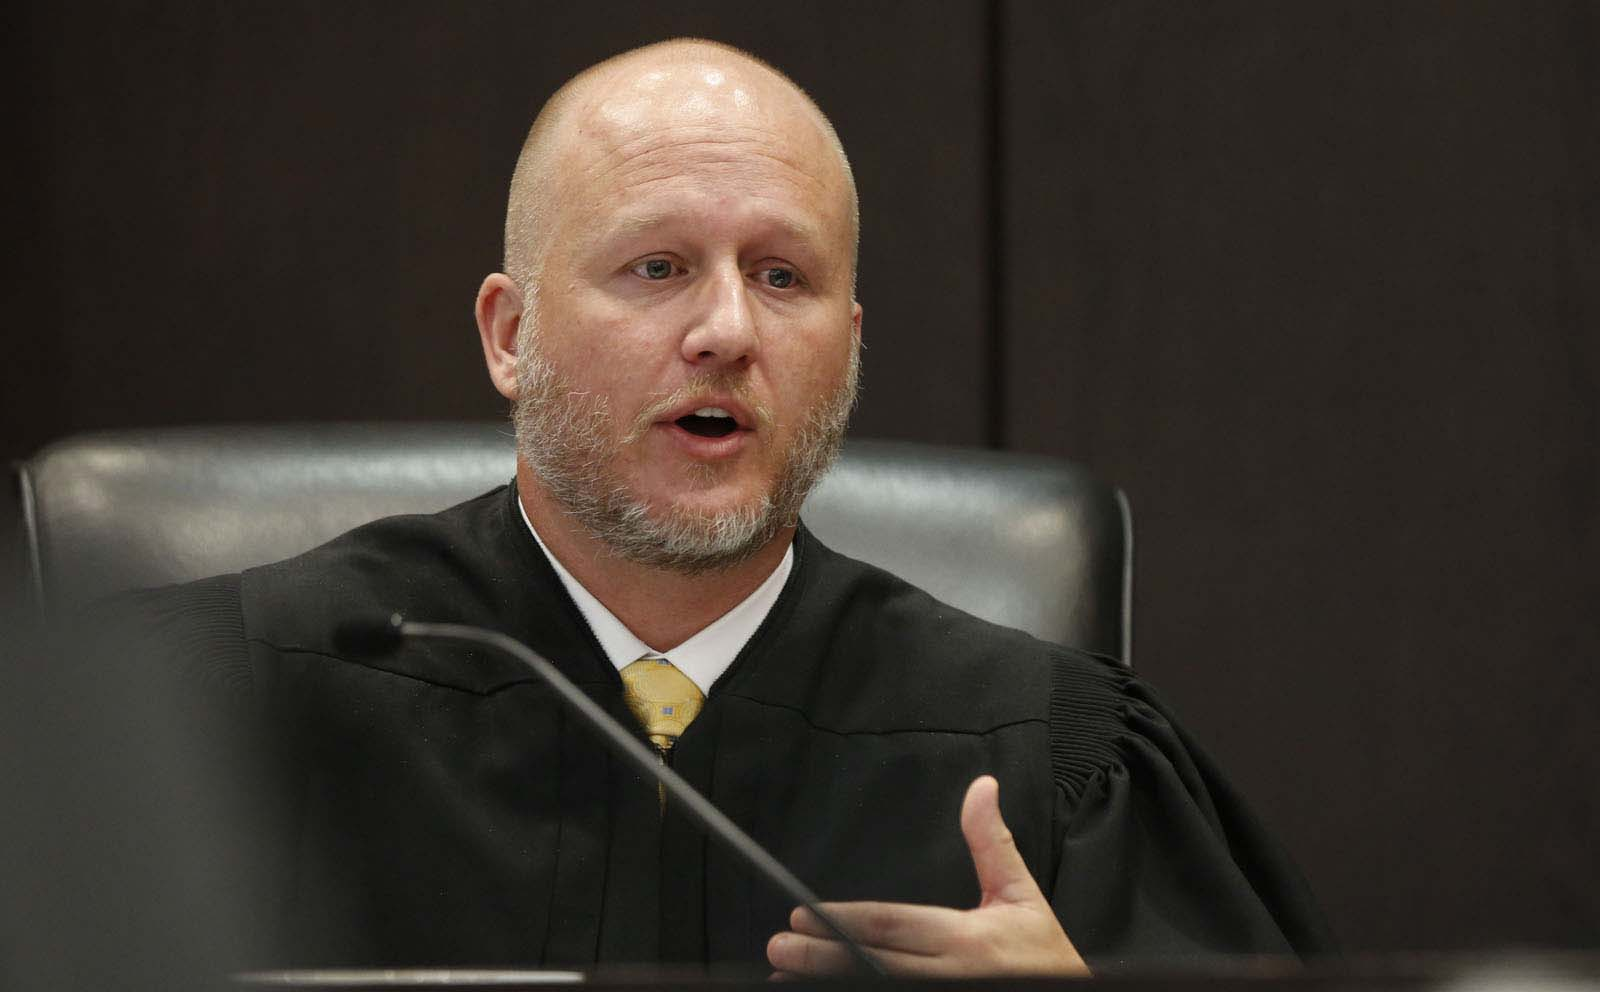 Circuit Court Judge James Colaw reads jury instructions during Pedro Bravo's murder trial in courtroom 1B of the Alachua County Criminal Justice Center Friday, August 15, 2014.  Bravo is accused of killing University of Florida student Christian Aguilar.  (Doug Finger/The Gainesville Sun/Pool)